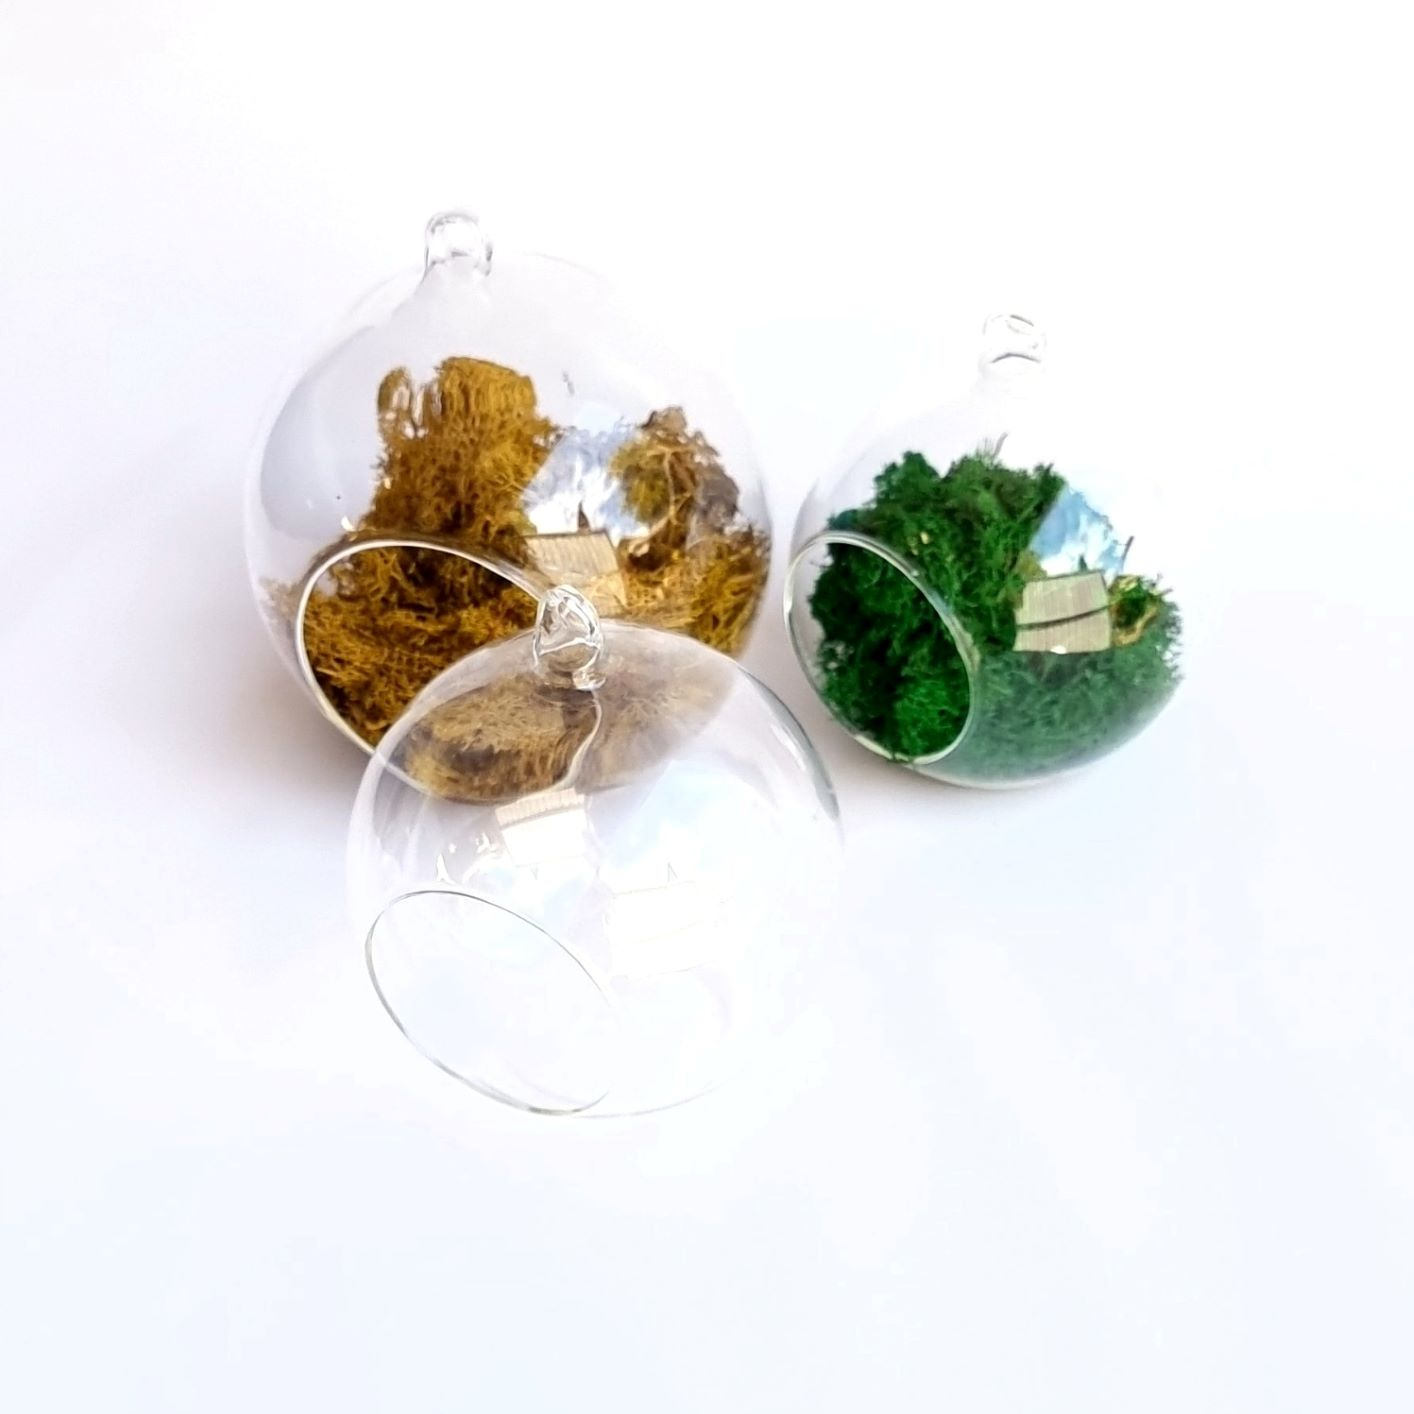 Glass bubble terrariums in two sizes